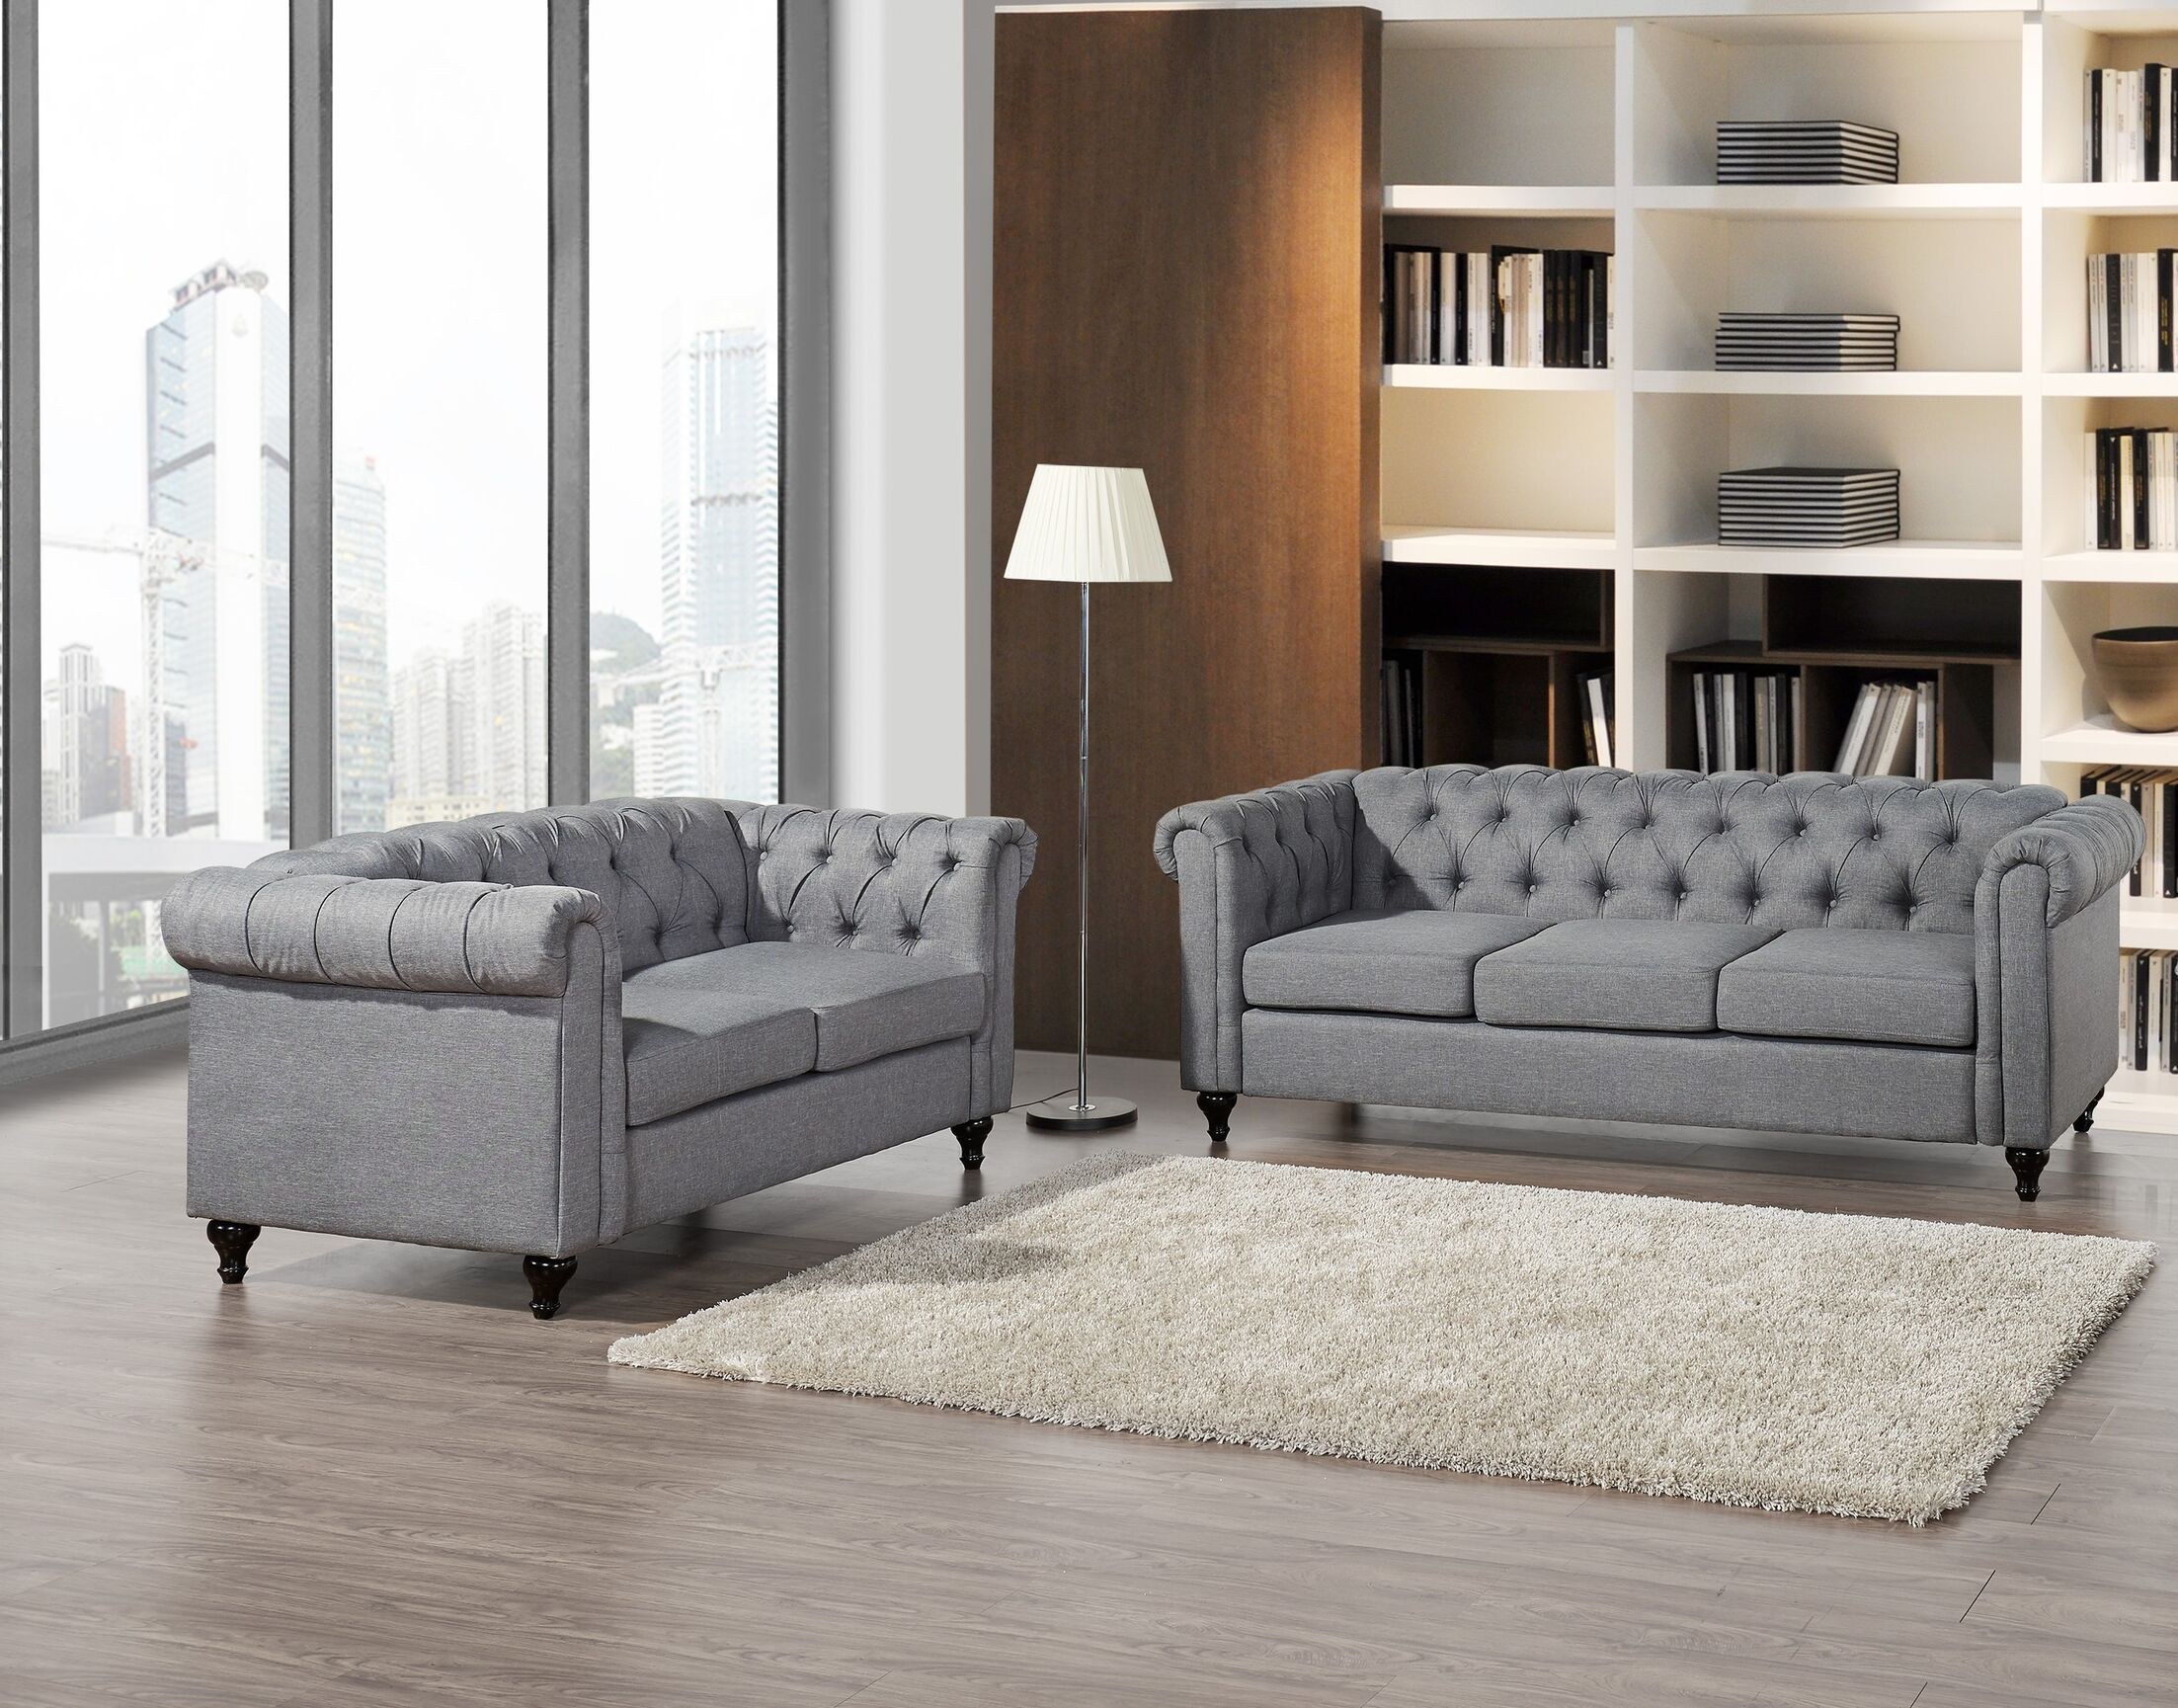 Chesterfield 2 Piece Living Room Set Upholstery: Gray